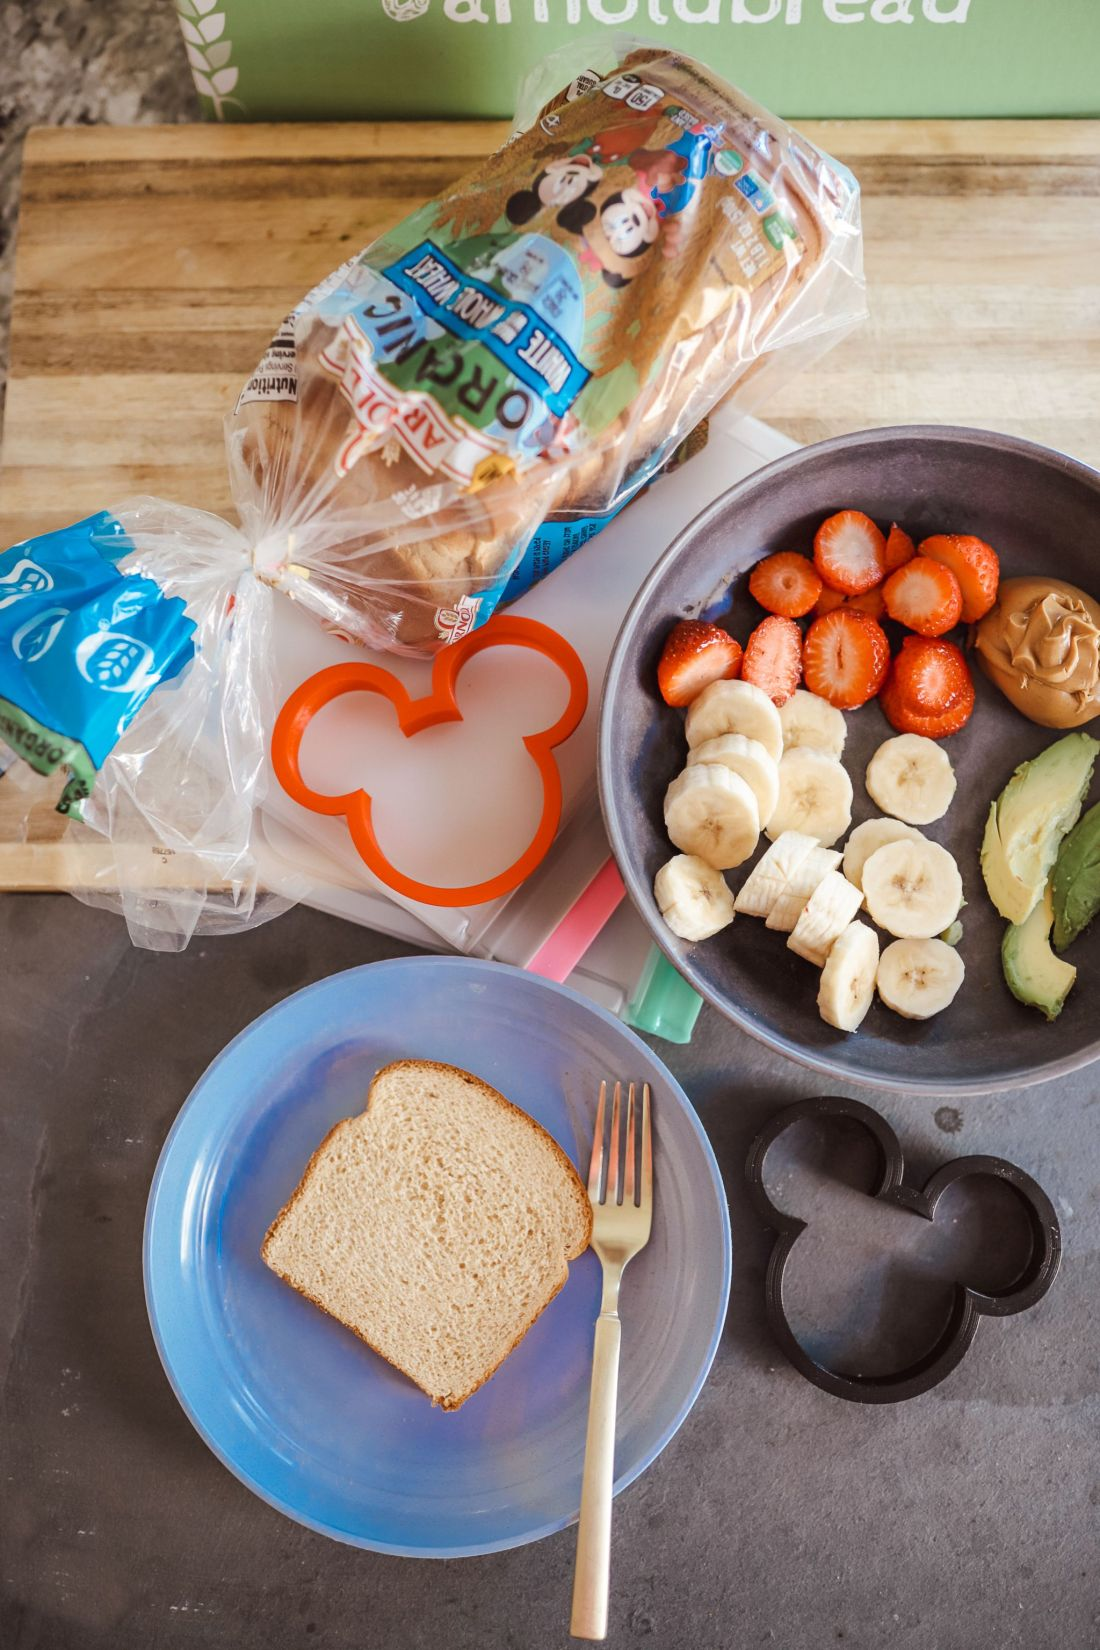 Kid Friendly Meal Ideas by popular Nashville lifestyle blog, Modern Day Moguls: image of a red Mickey Mouse sandwich cutter, a bowl full of cut up bananas, strawberries, and avocado, and a loaf of Arnold Organic white bread.